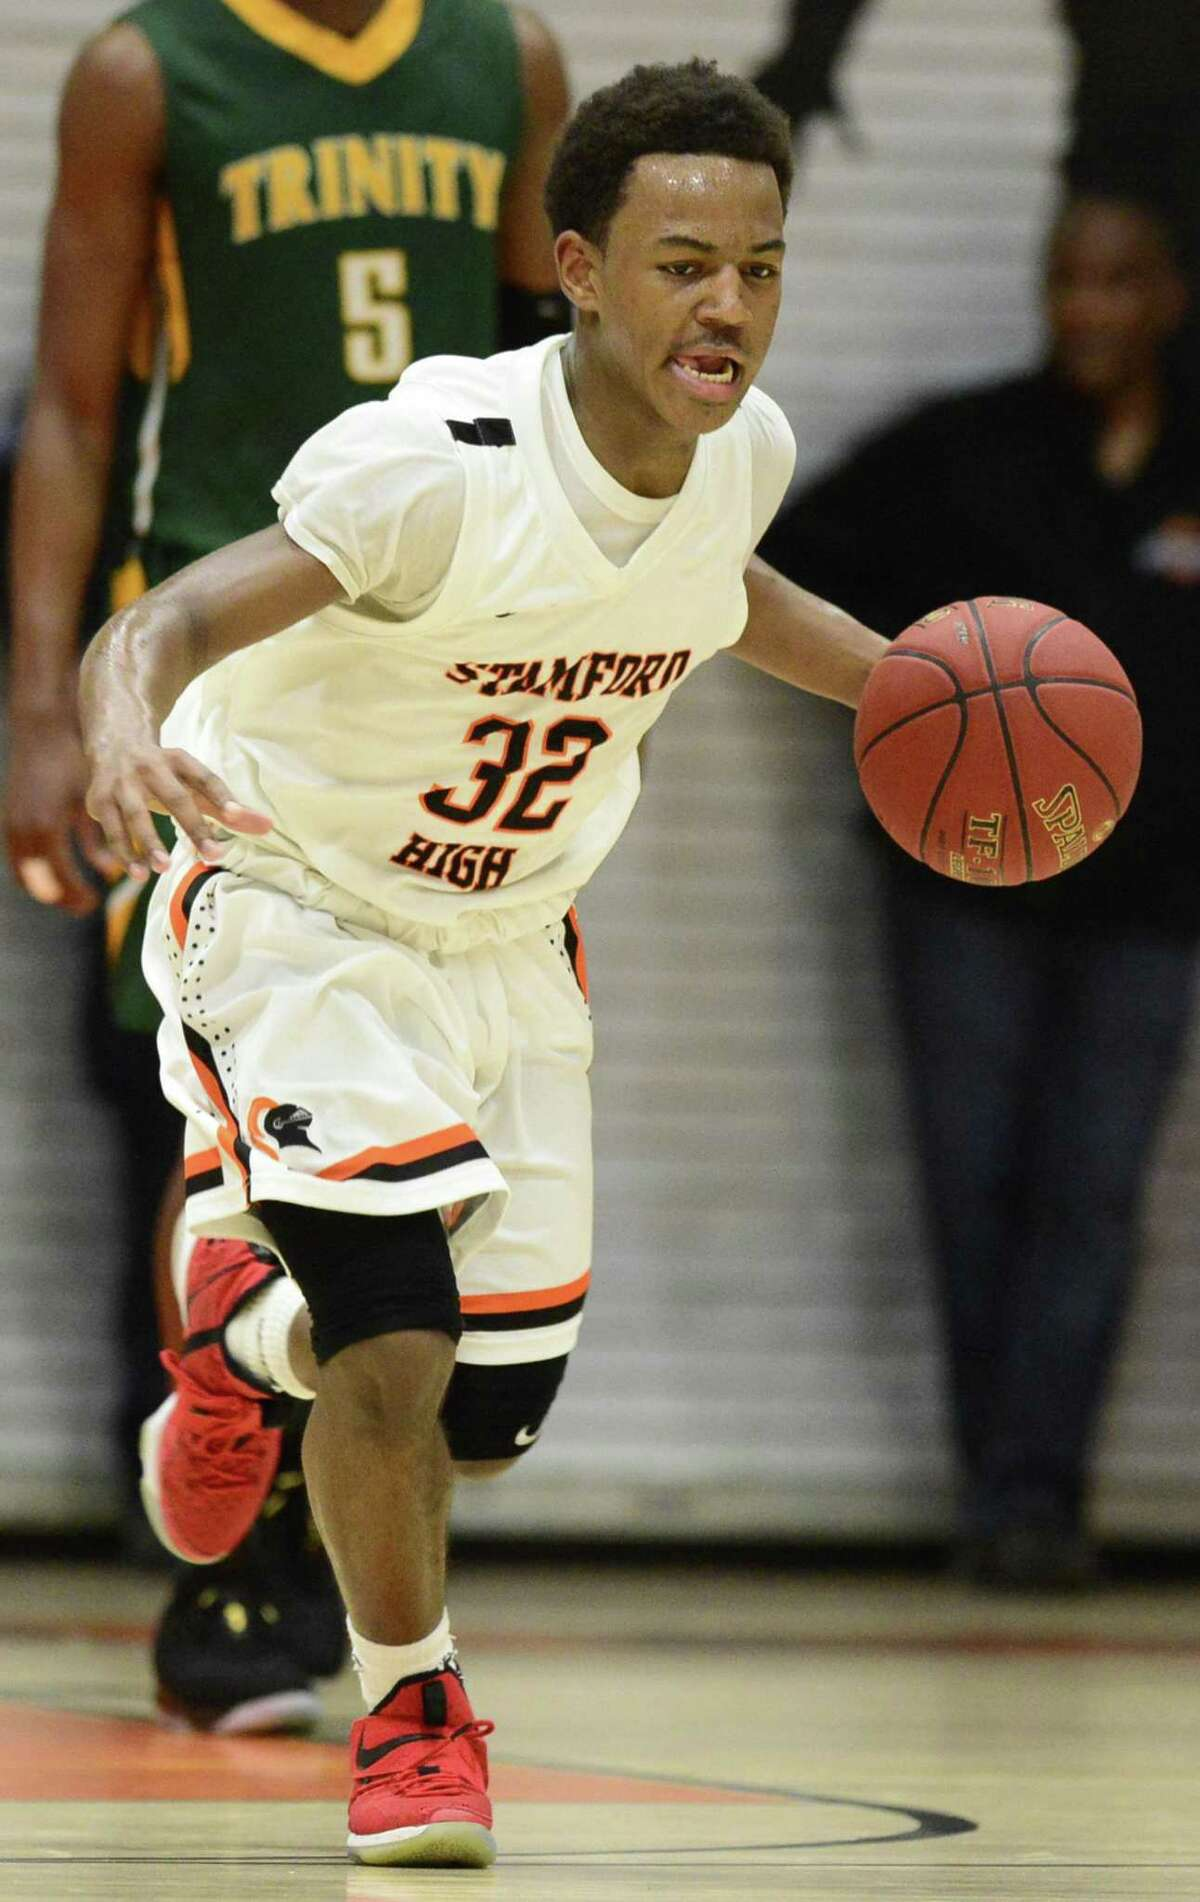 Jaden Bell Trinity Catholic defeated Stamford 69-55 in the city basketball championship on Wednesday, Feb. 21, 2018 in Stamford, Connecticut.